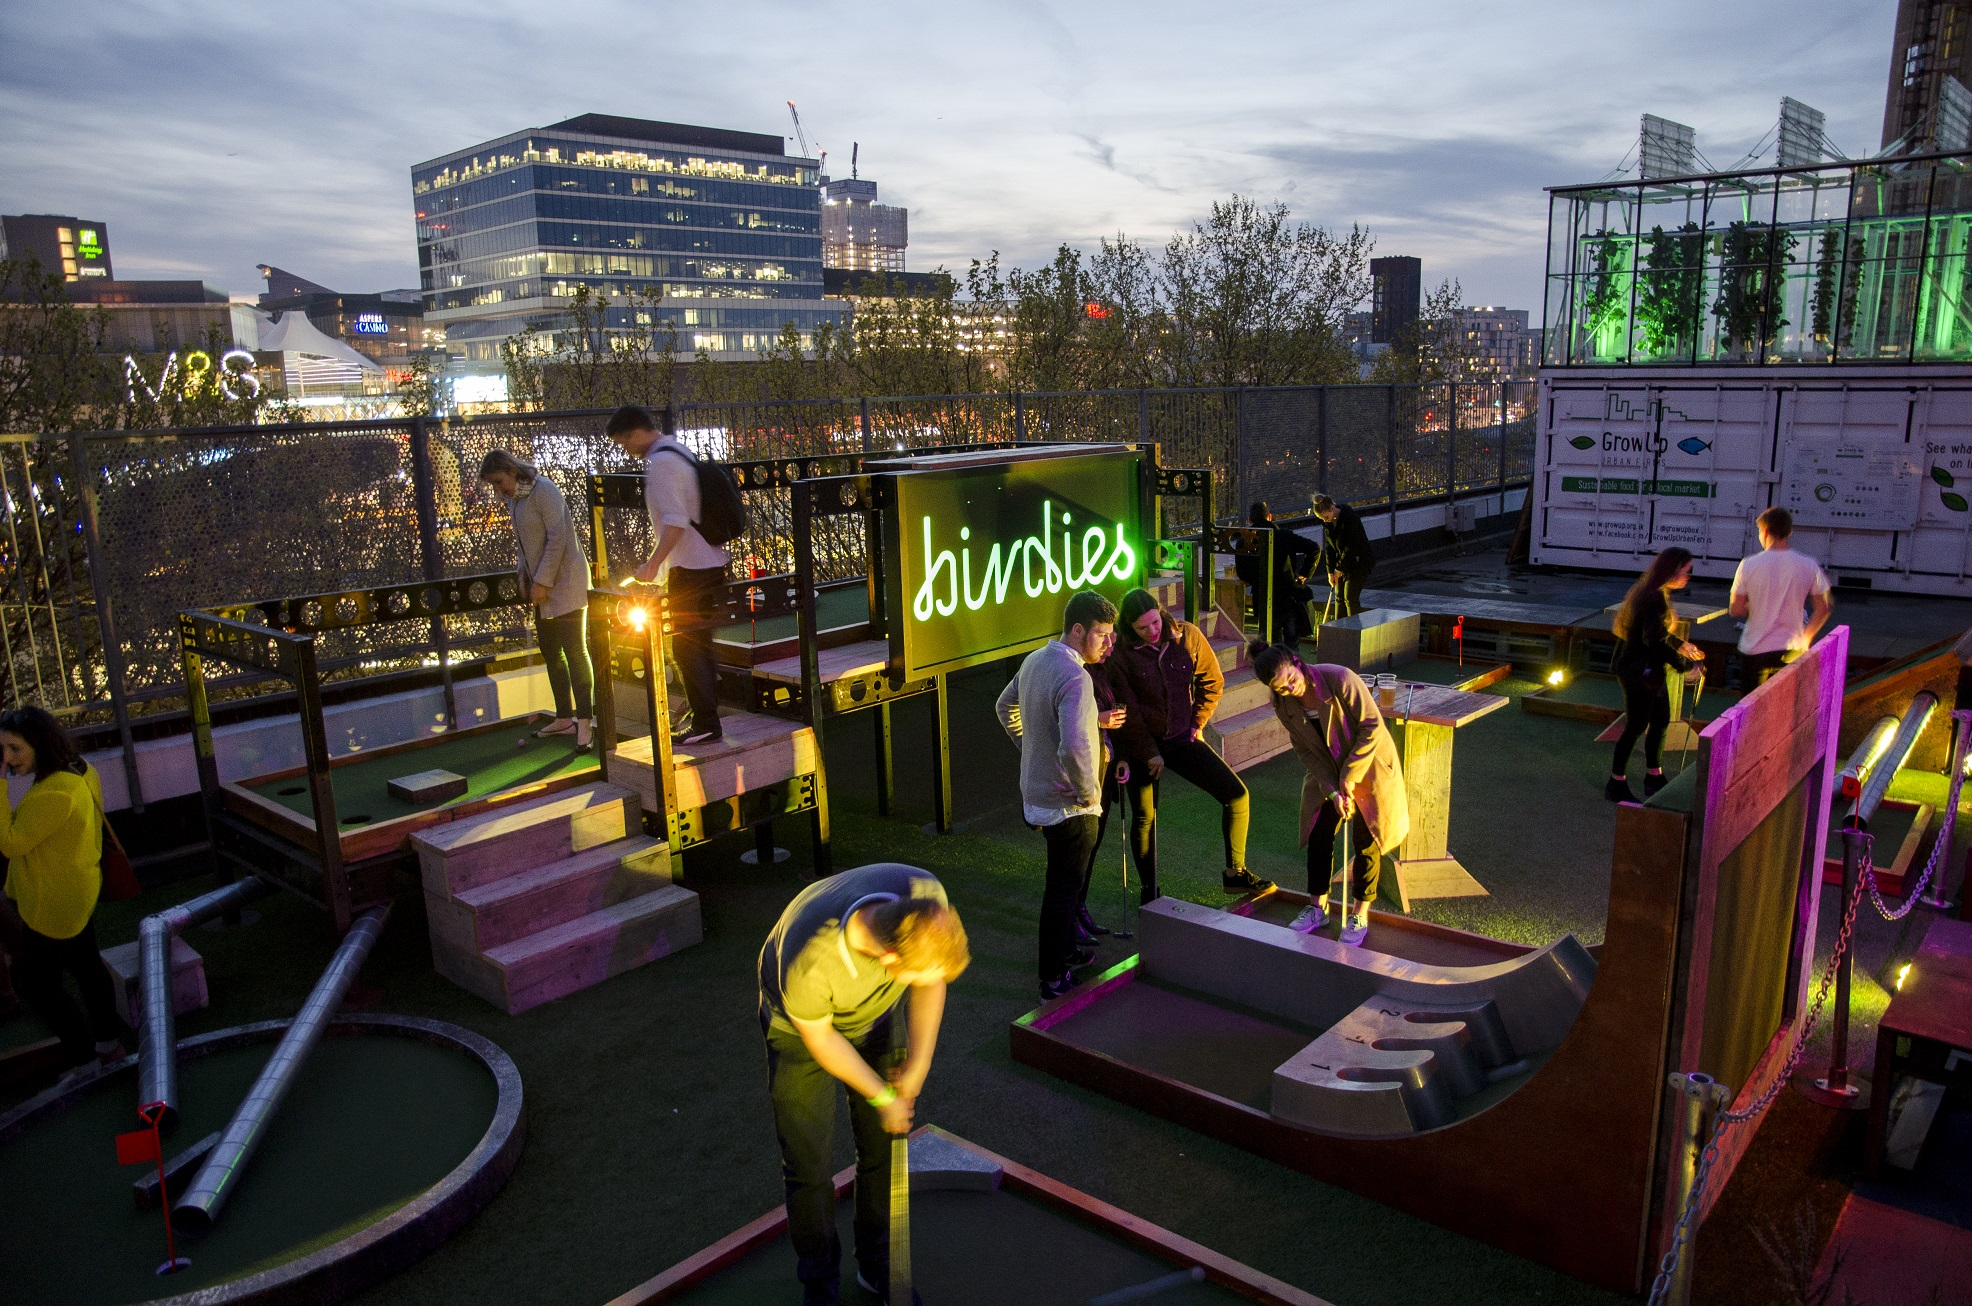 Birdies crazy golf, Roof East | Courtesy of Birdies